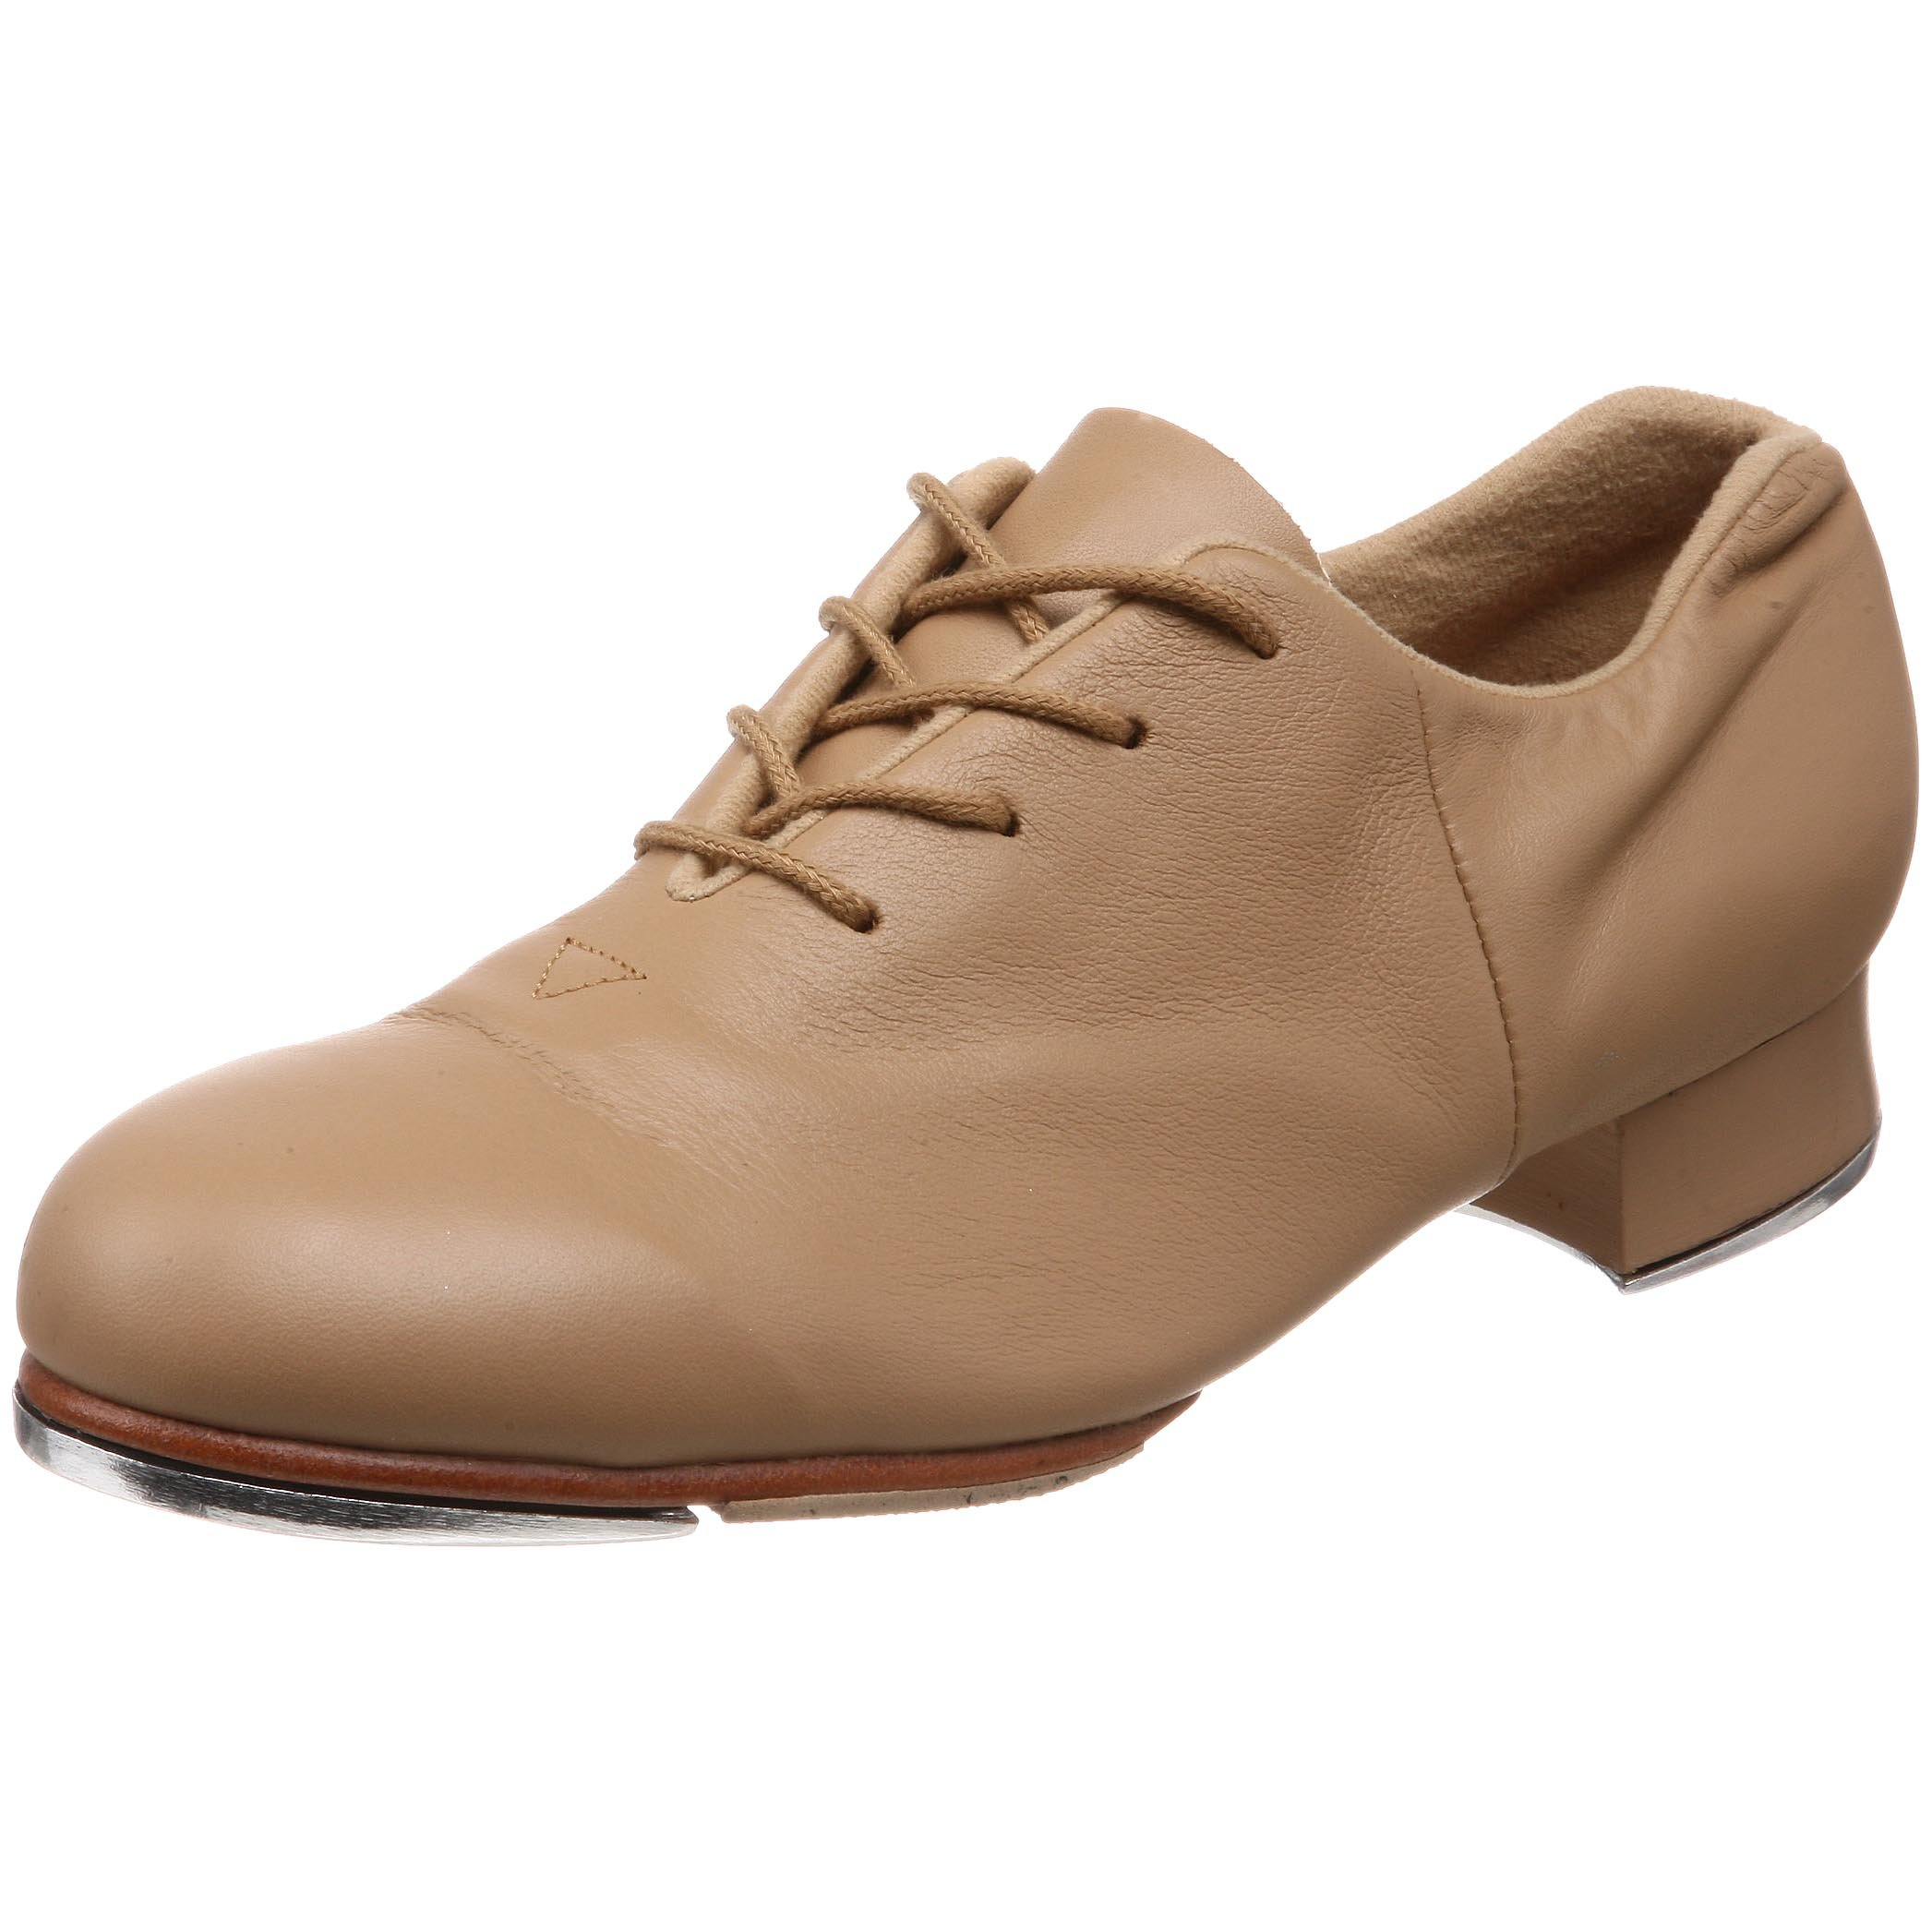 Bloch Women's Tap-Flex, Tan, 11 M US by Bloch